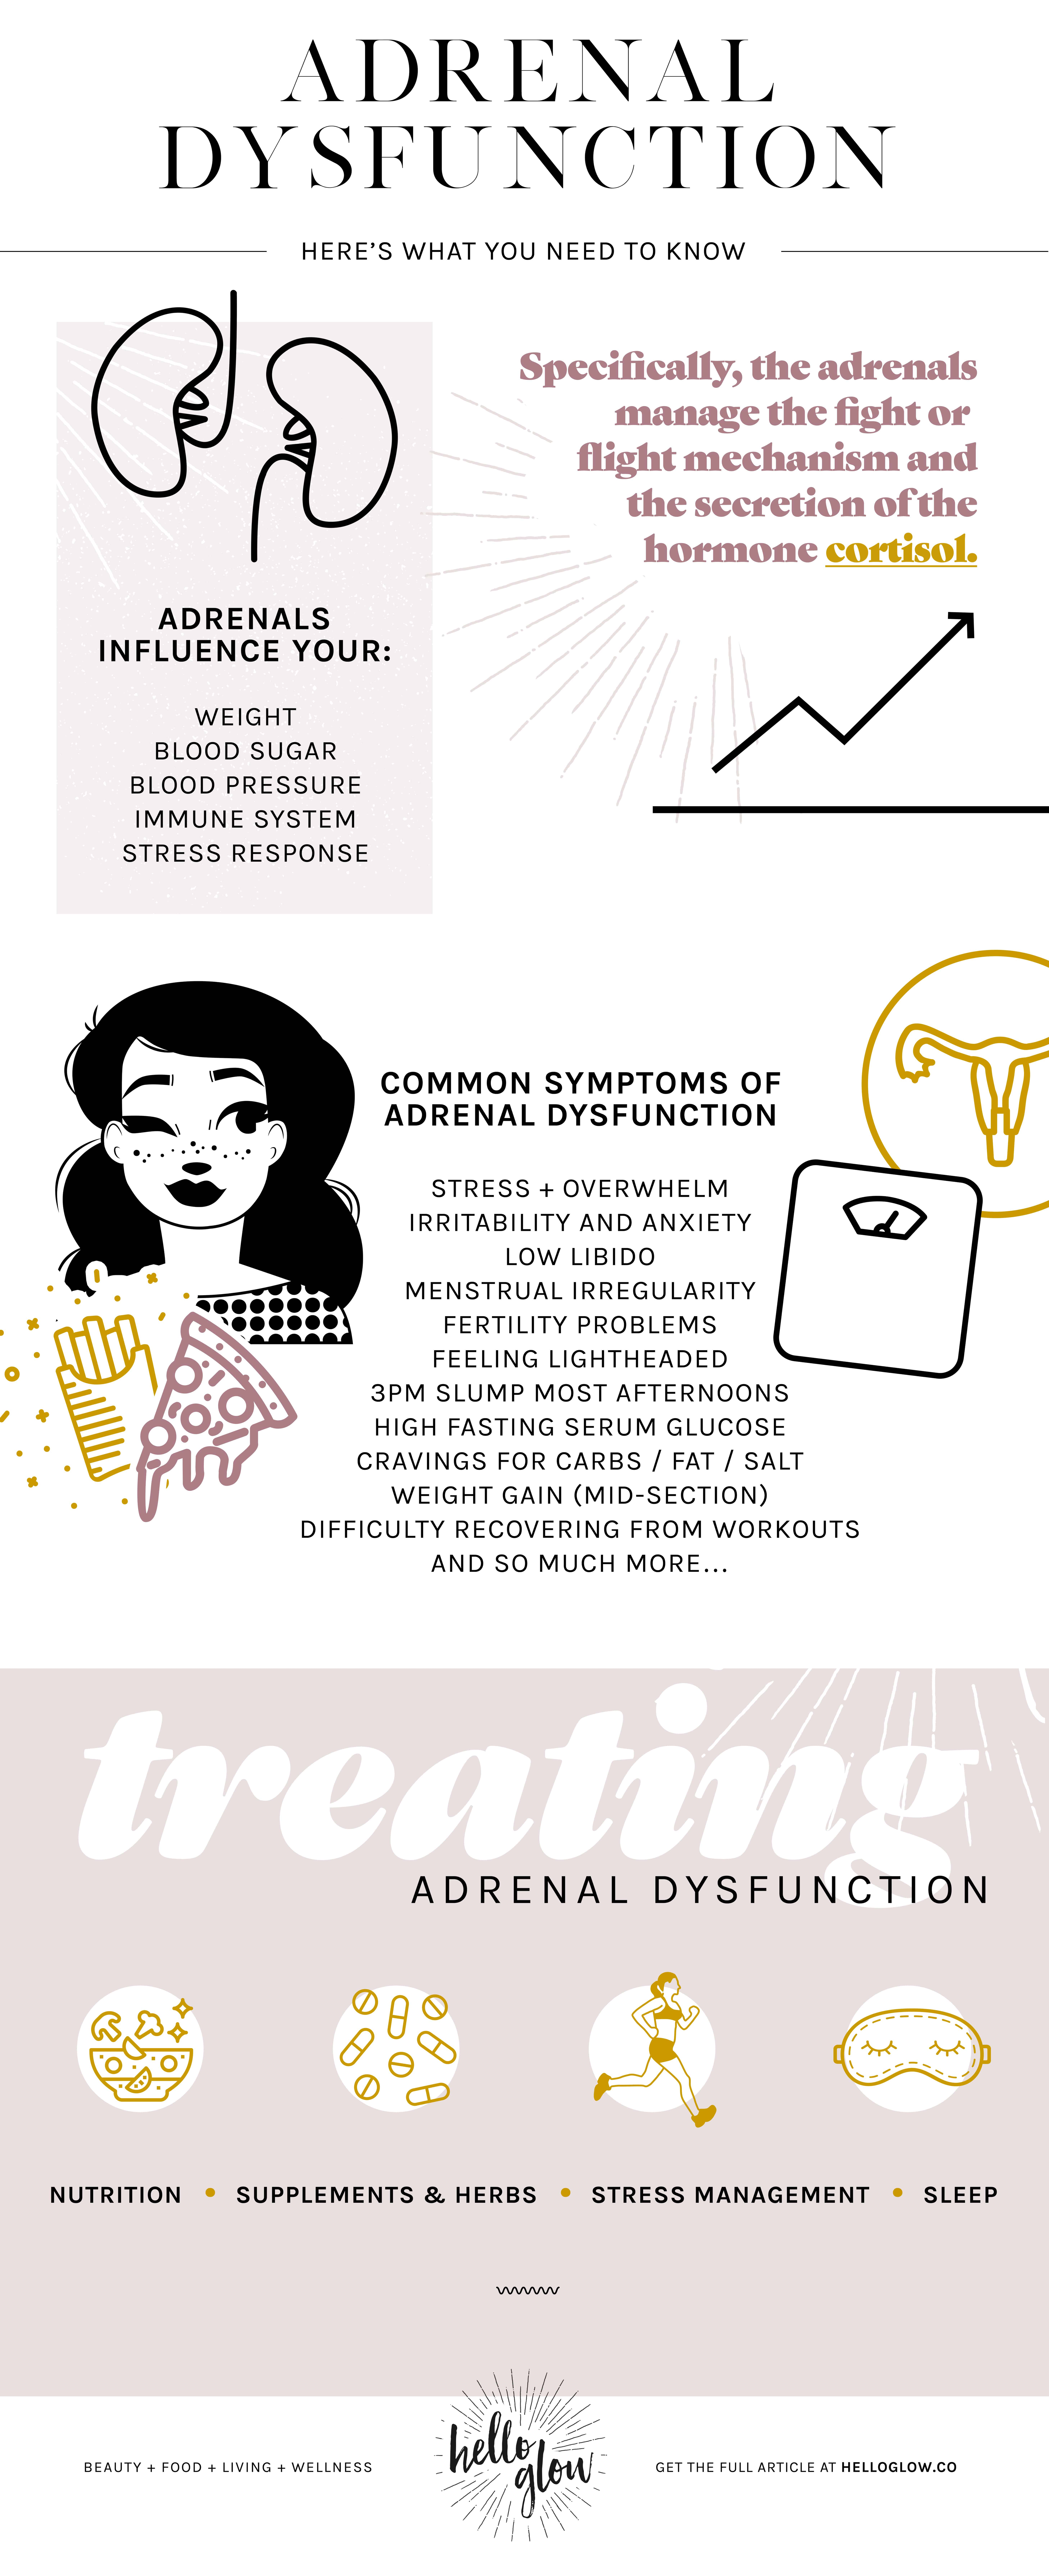 Here's What You Need to Know About Adrenal Fatigue